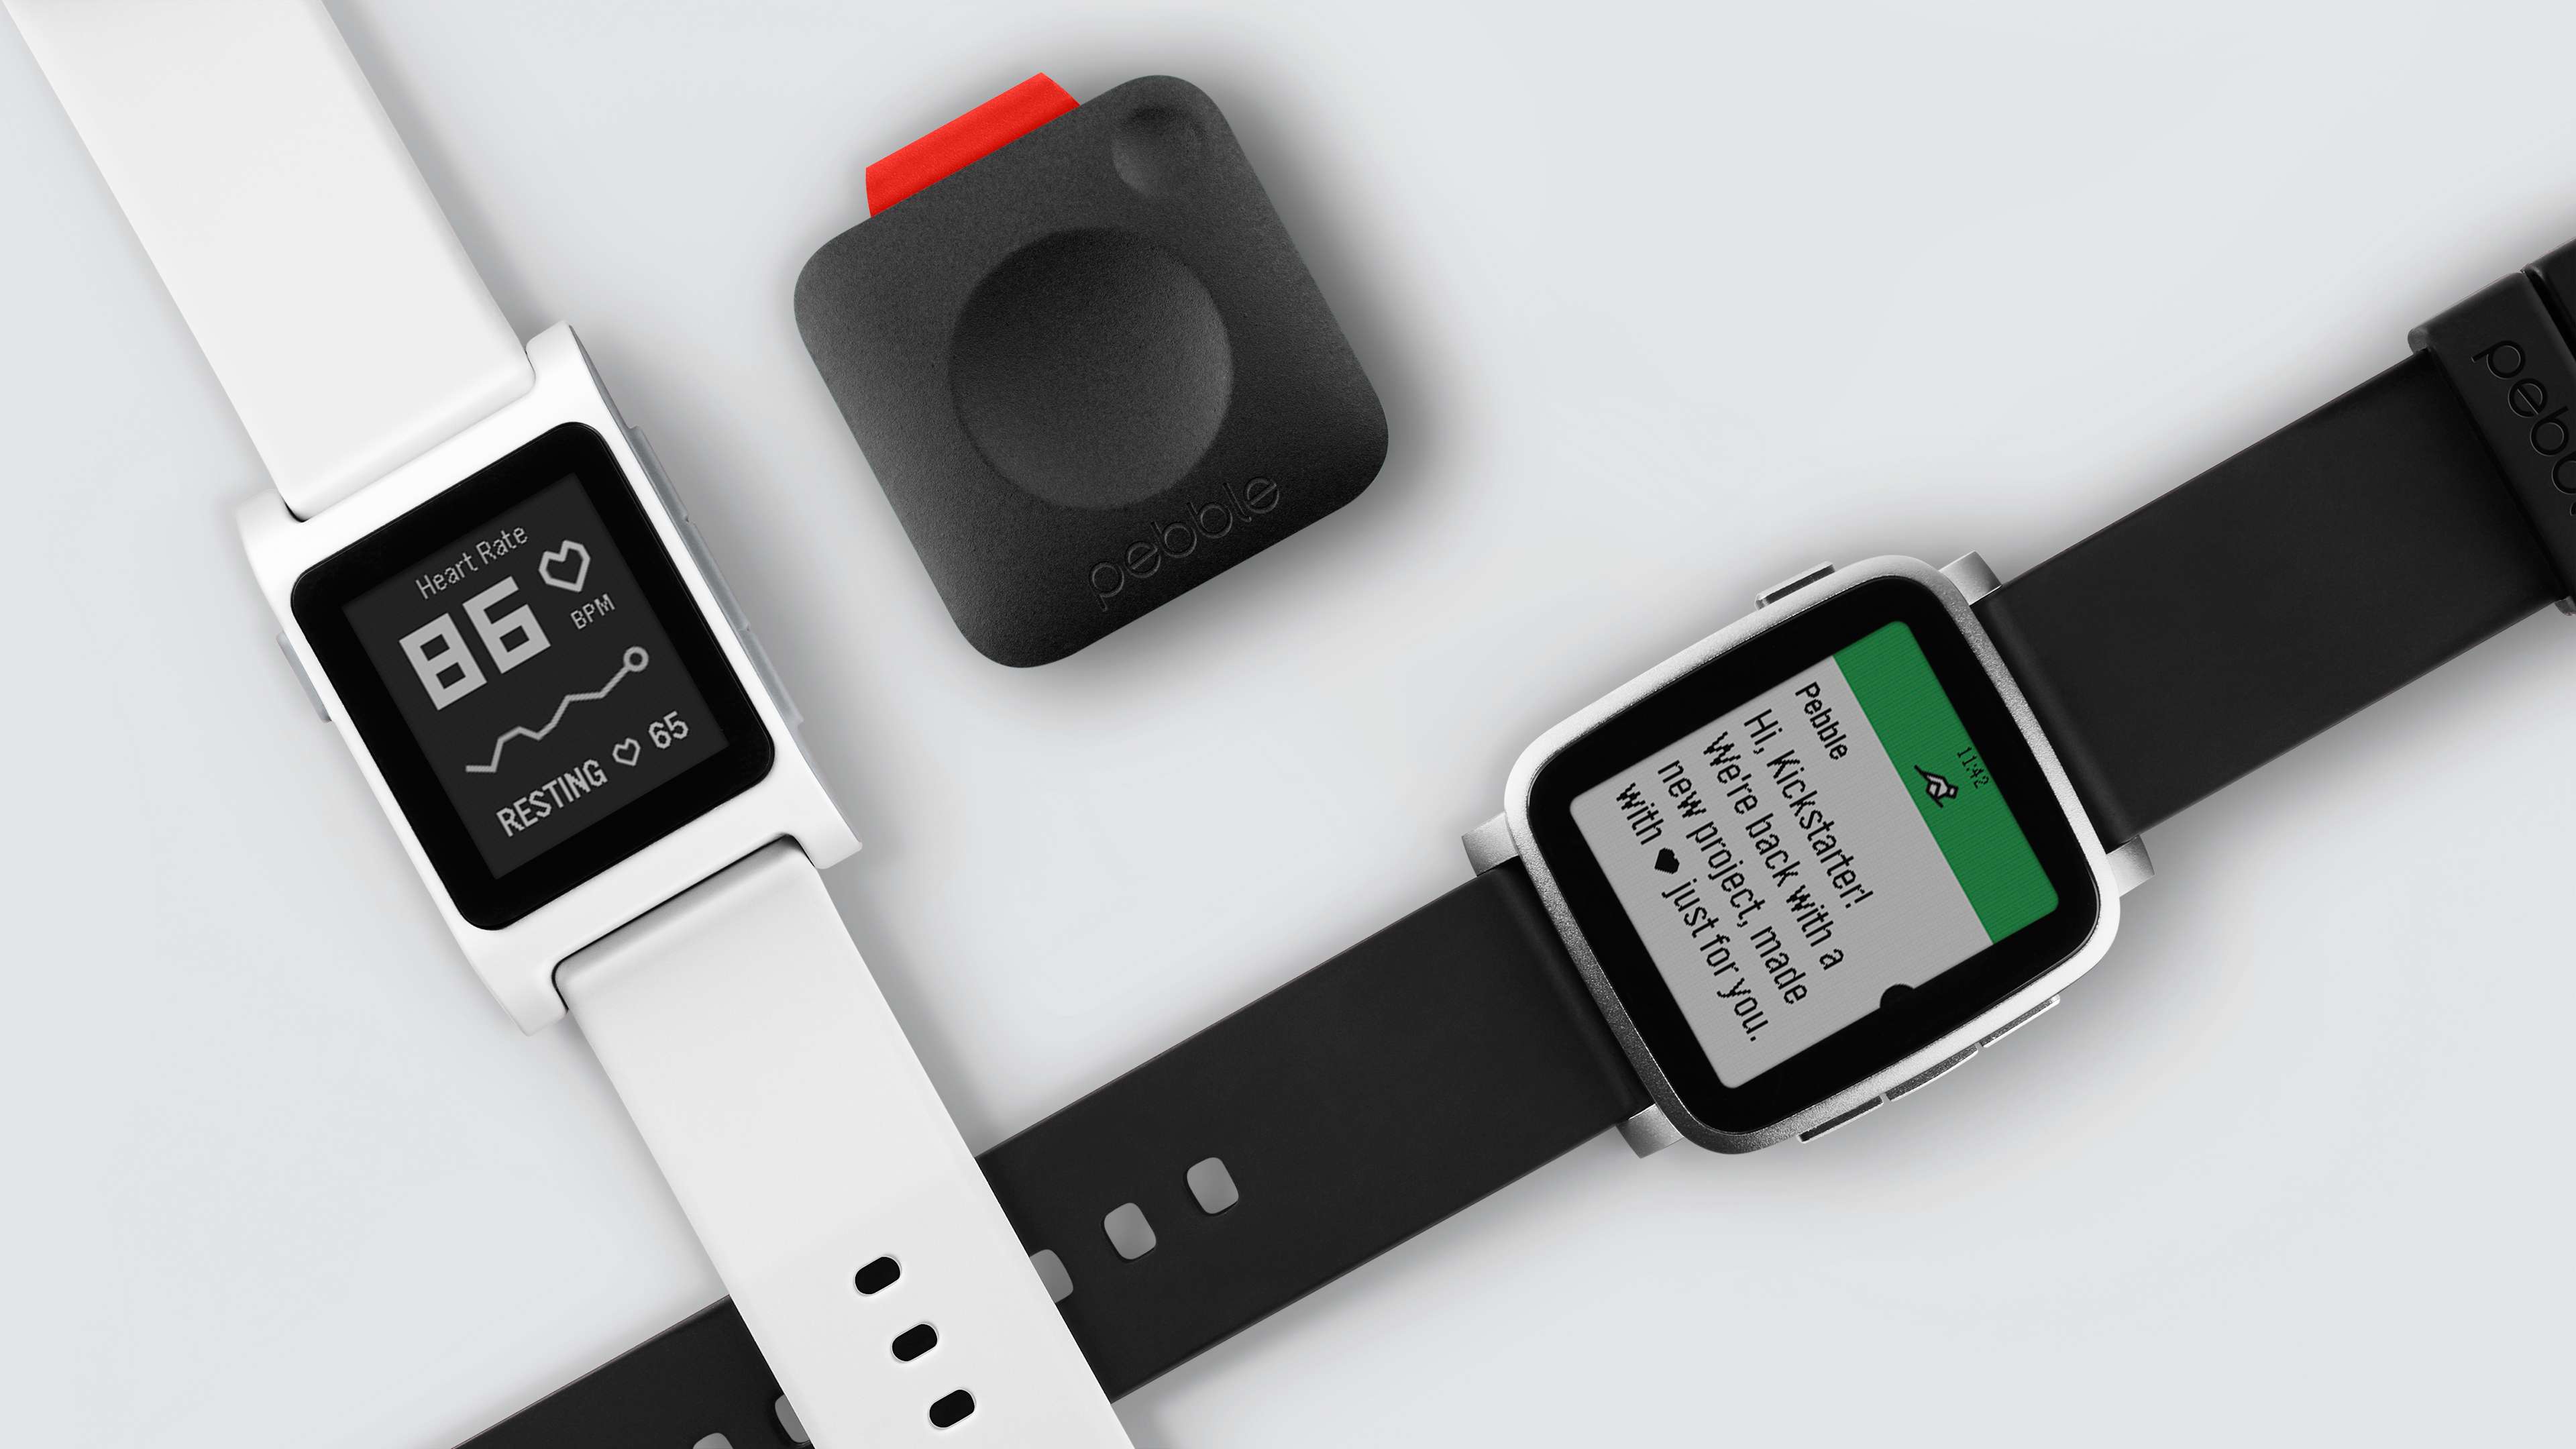 The new Pebble 2, Pebble Time 2, and Pebble Core